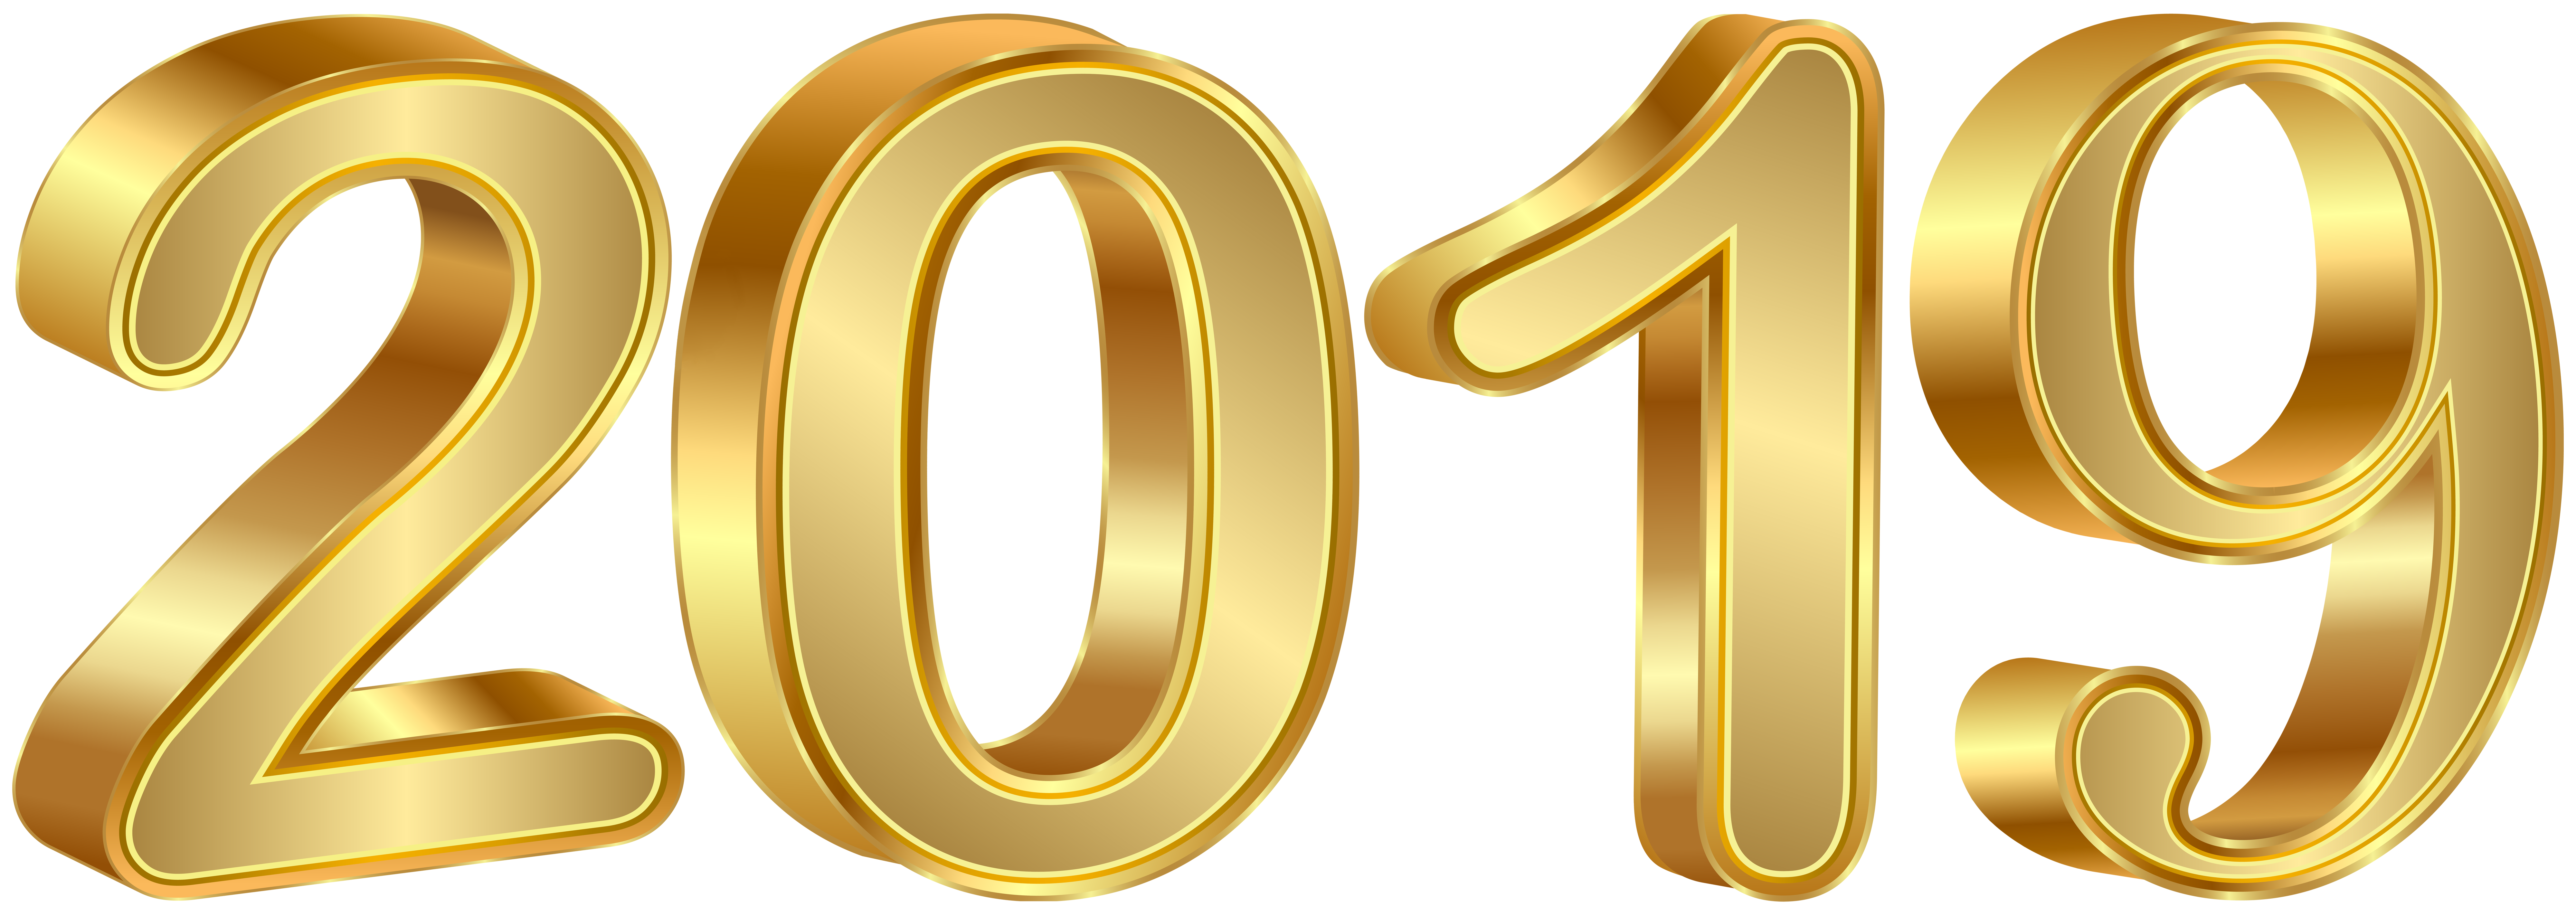 2019 Gold PNG Clipart Image Gallery Yopriceville High